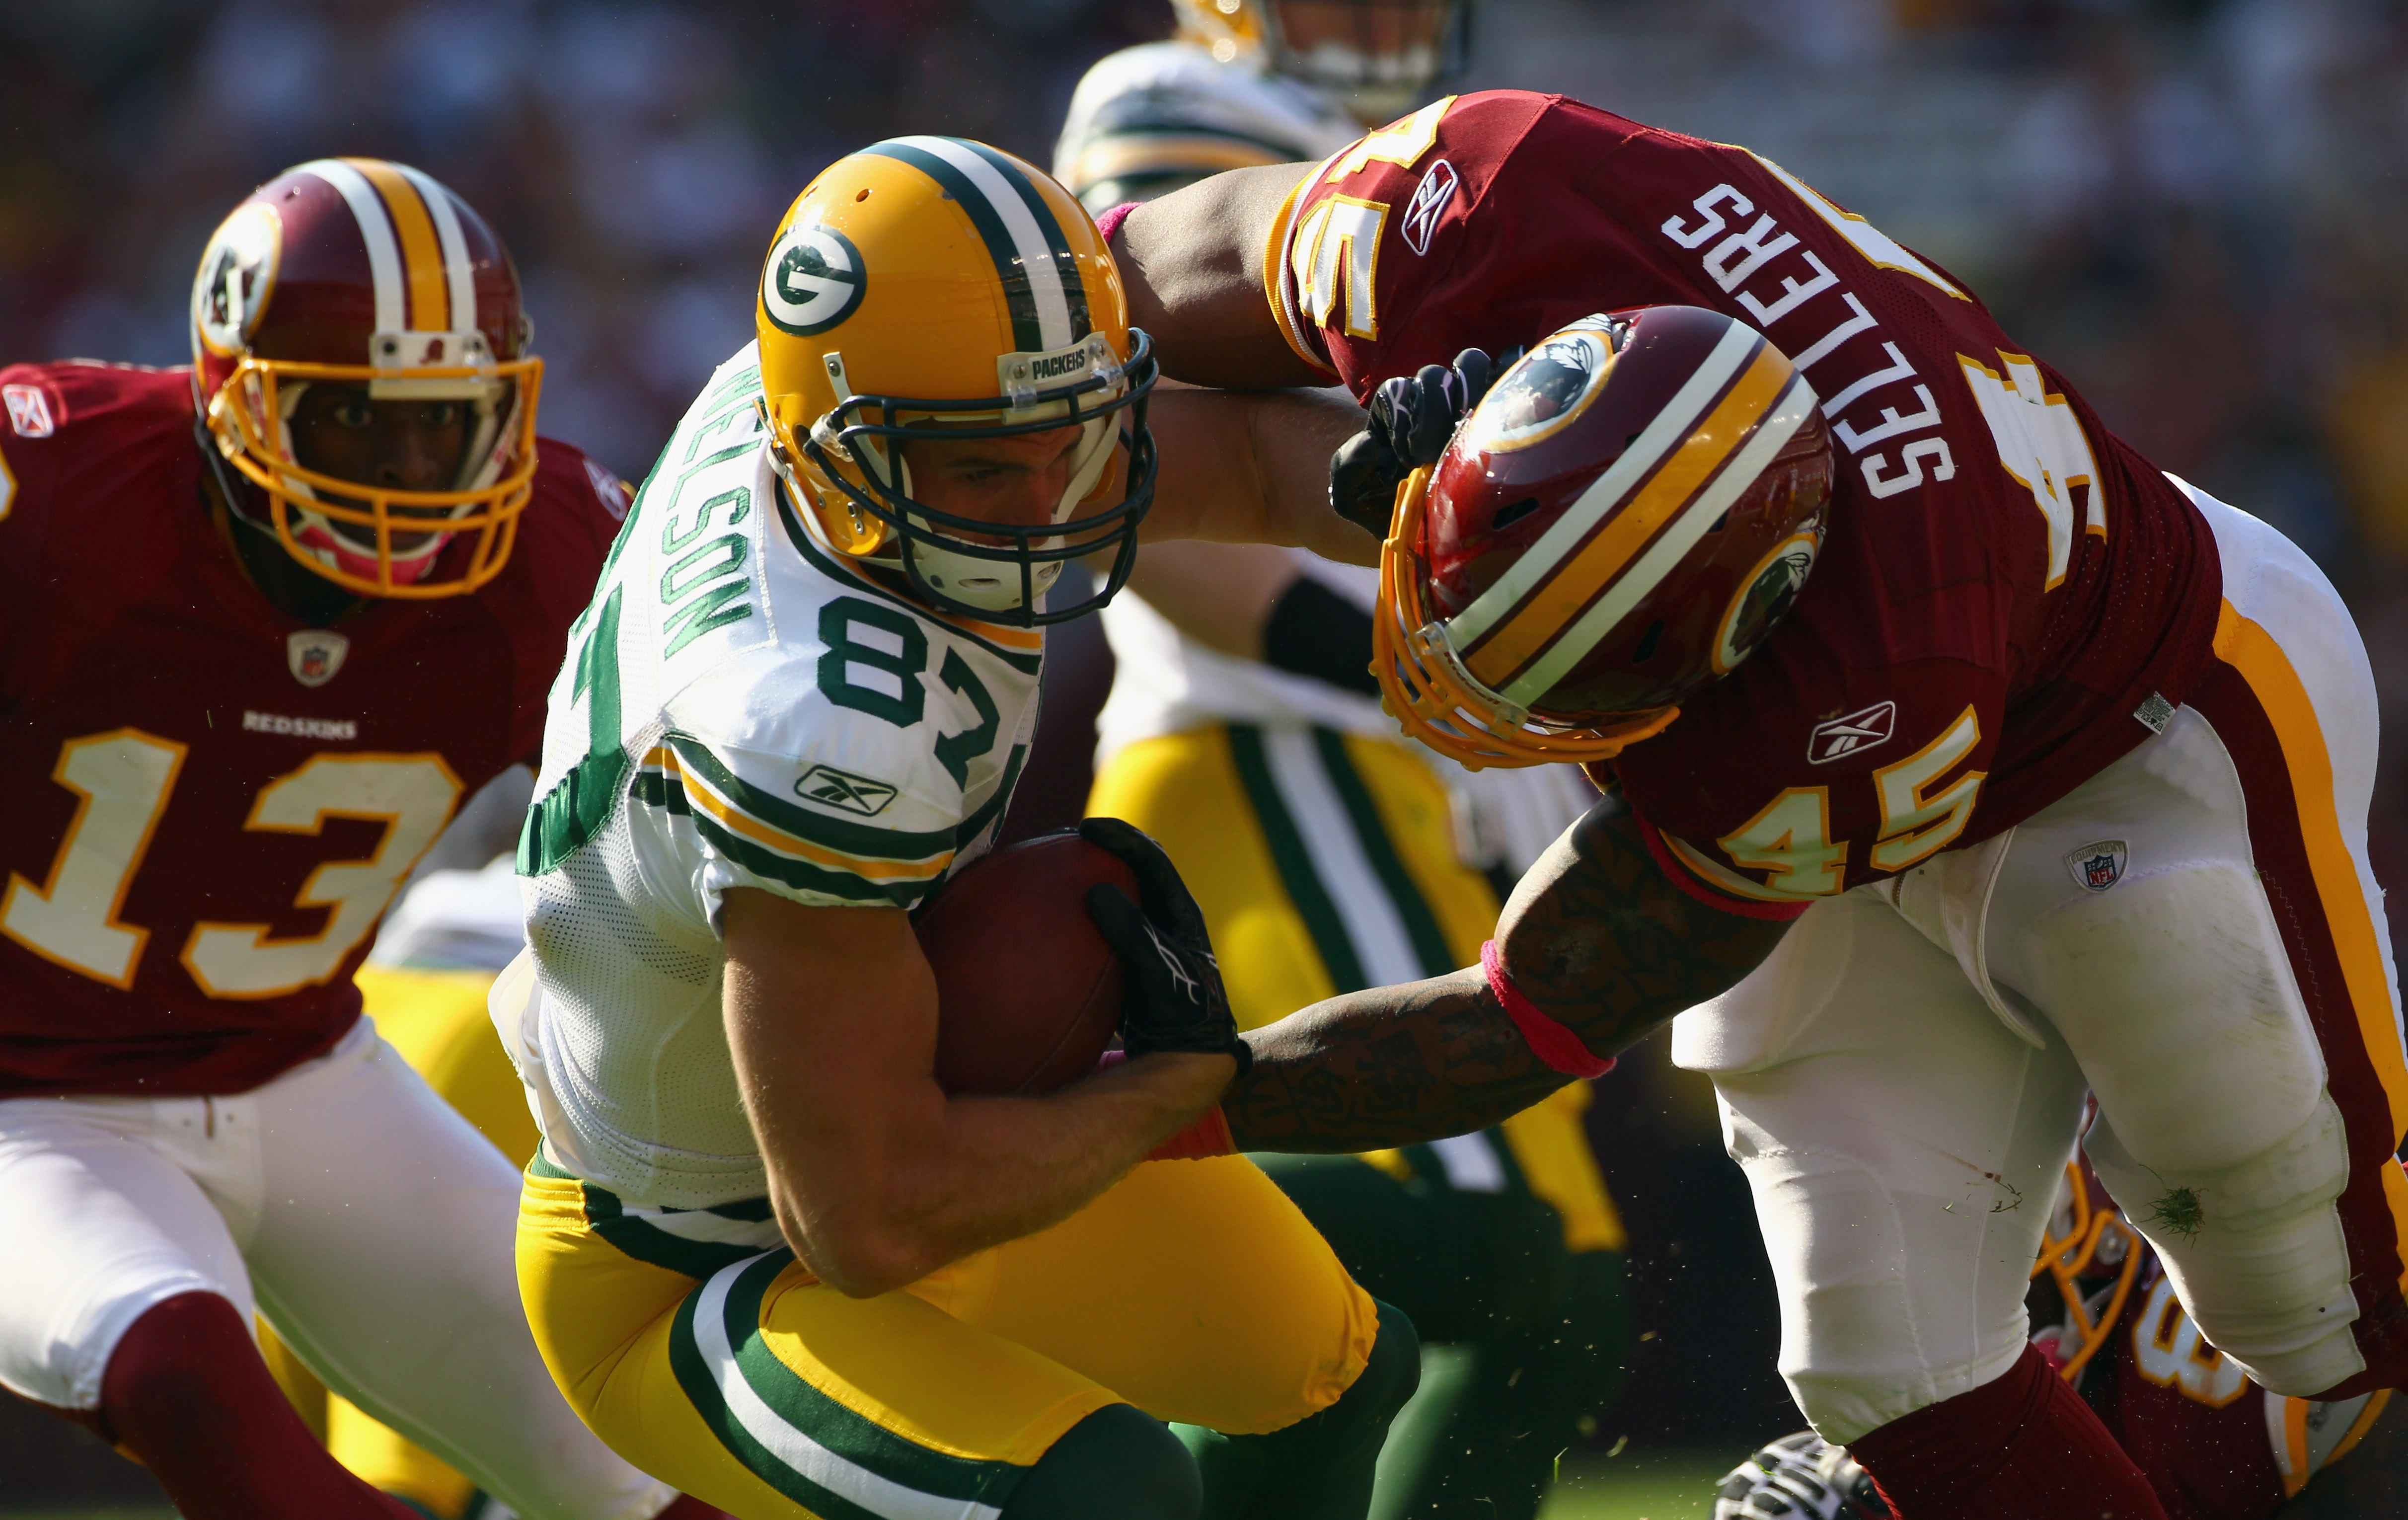 LANDOVER, MD - OCTOBER 10:  Wide receiver Jordy Nelson #87 of the Green Bay Packers is tackled by Mike Sellers #45 of the Washington Redskins on a punt return at FedExField on October 10, 2010 in Landover, Maryland. The Redskins won the game in overtime 1